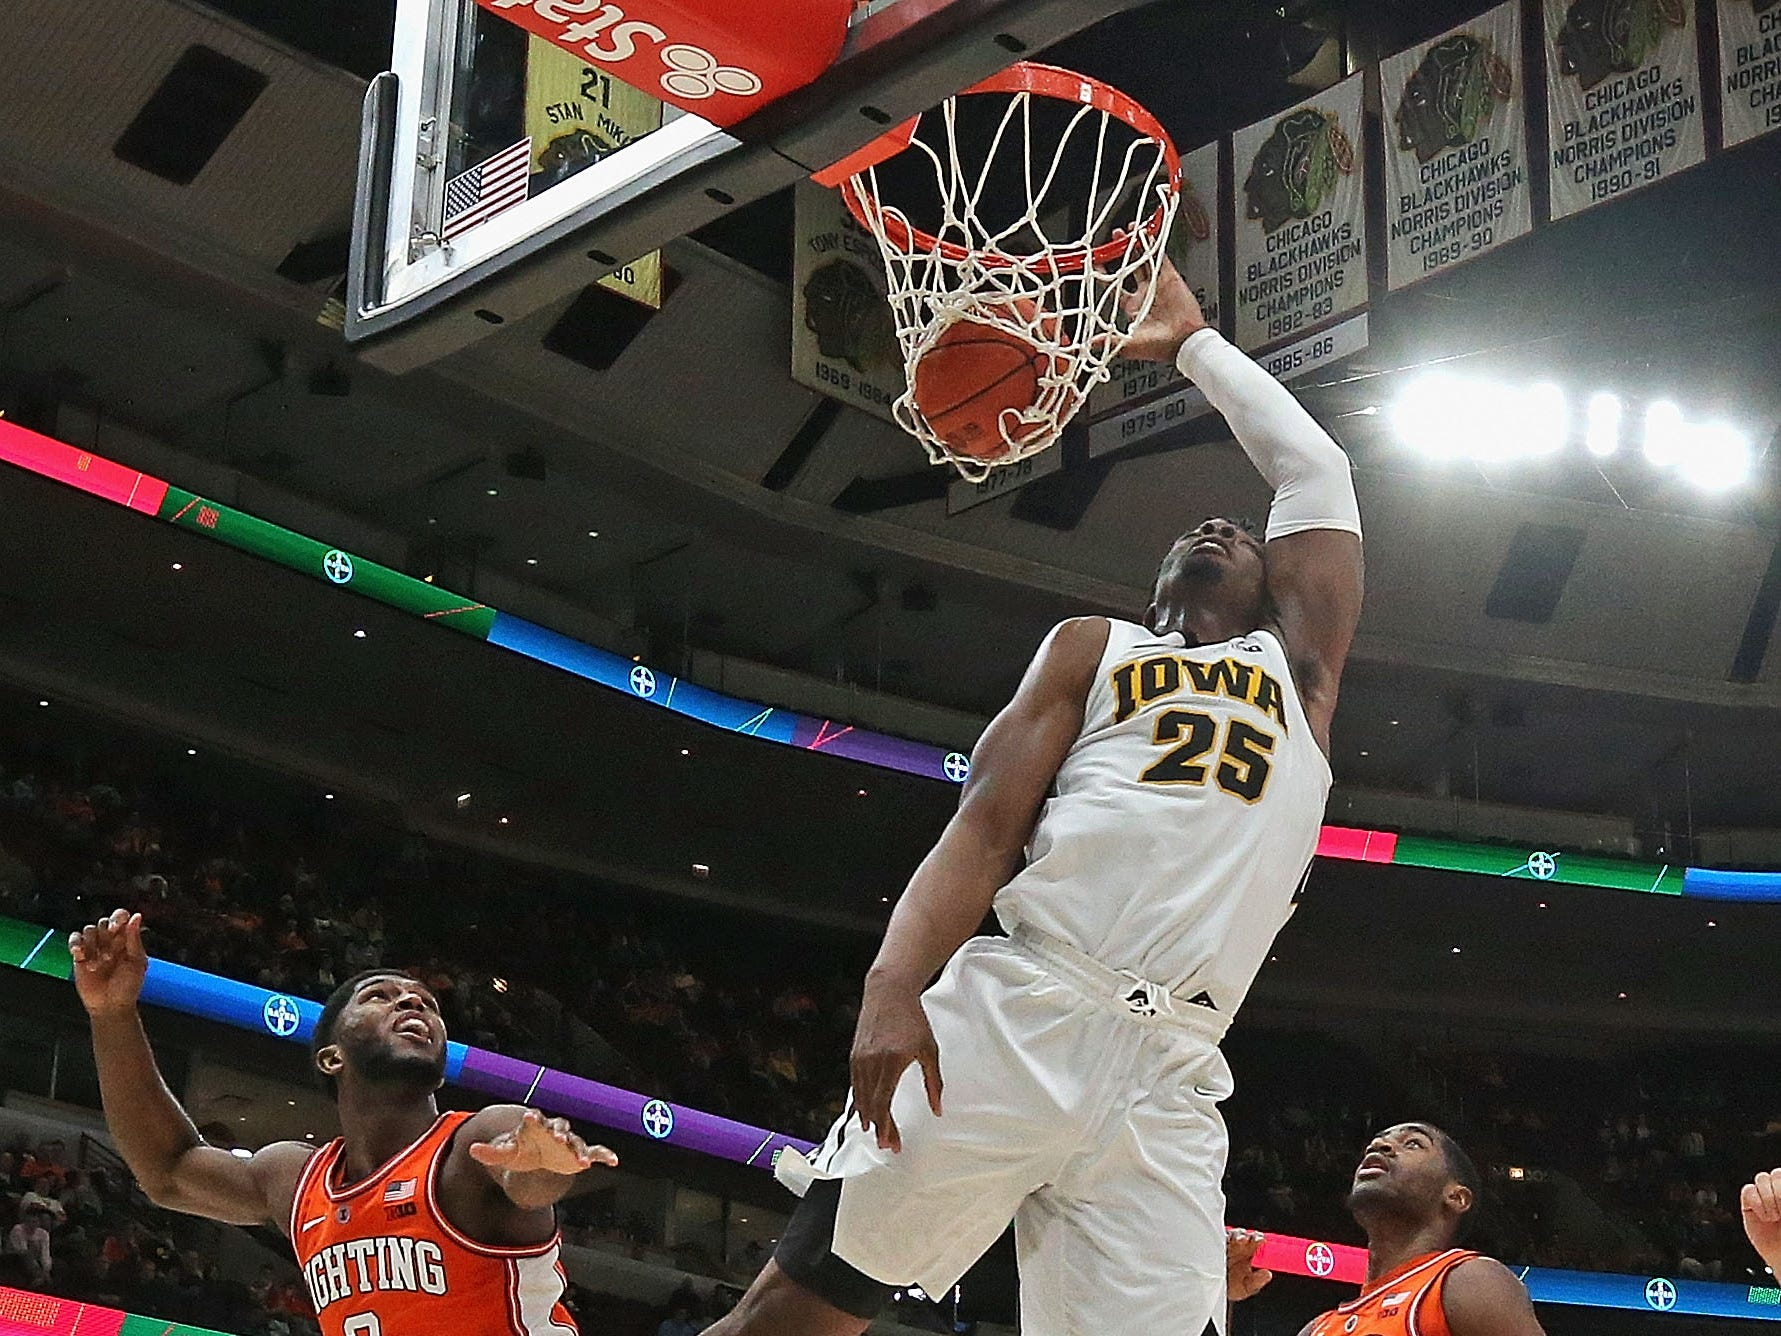 CHICAGO, ILLINOIS - MARCH 14: Tyler Cook #25 of the Iowa Hawkeyes dunks over Kipper Nichols #2 of the Illinois Fighting Illini at the United Center on March 14, 2019 in Chicago, Illinois. Iowa defeated Illinois 83-62. (Photo by Jonathan Daniel/Getty Images)